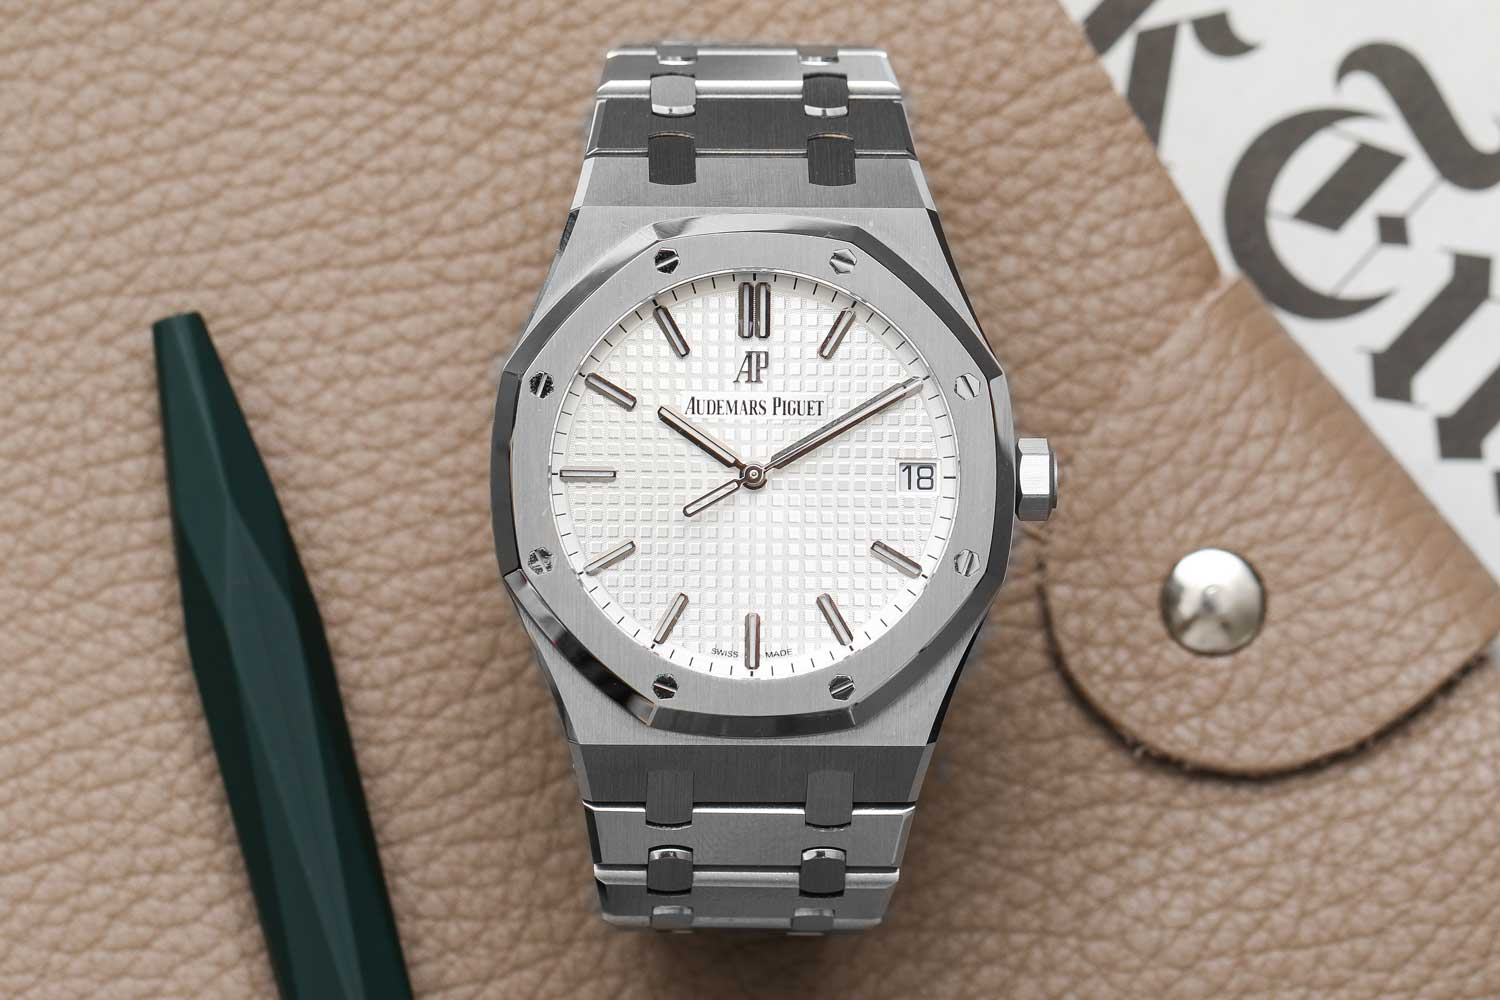 The Audemars Piguet Royal Oak ref. 15000 is an excellent update to the basic Royal Oak model and a great all-around daily-wearer. The Audemars Piguet Royal Oak ref. 15000 is an excellent update to the basic Royal Oak model and a great all-around daily-wearer. (©Revolution)